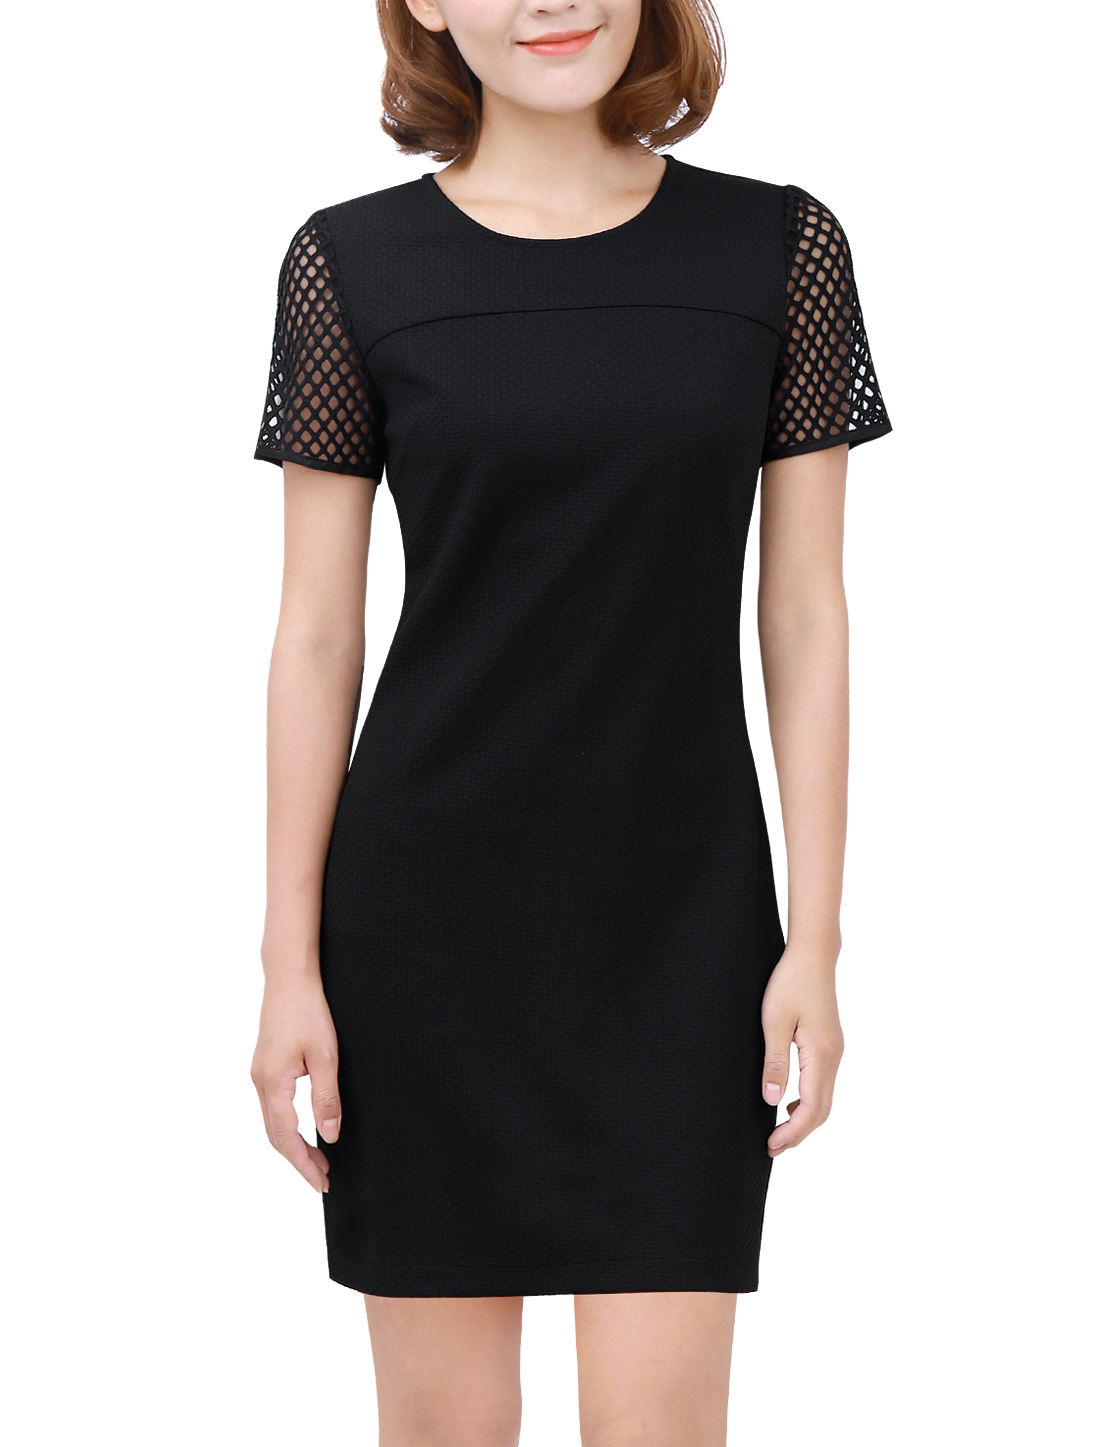 Women Short Sleeve Panel Unlined Casual T-Shirt Dress Black XL